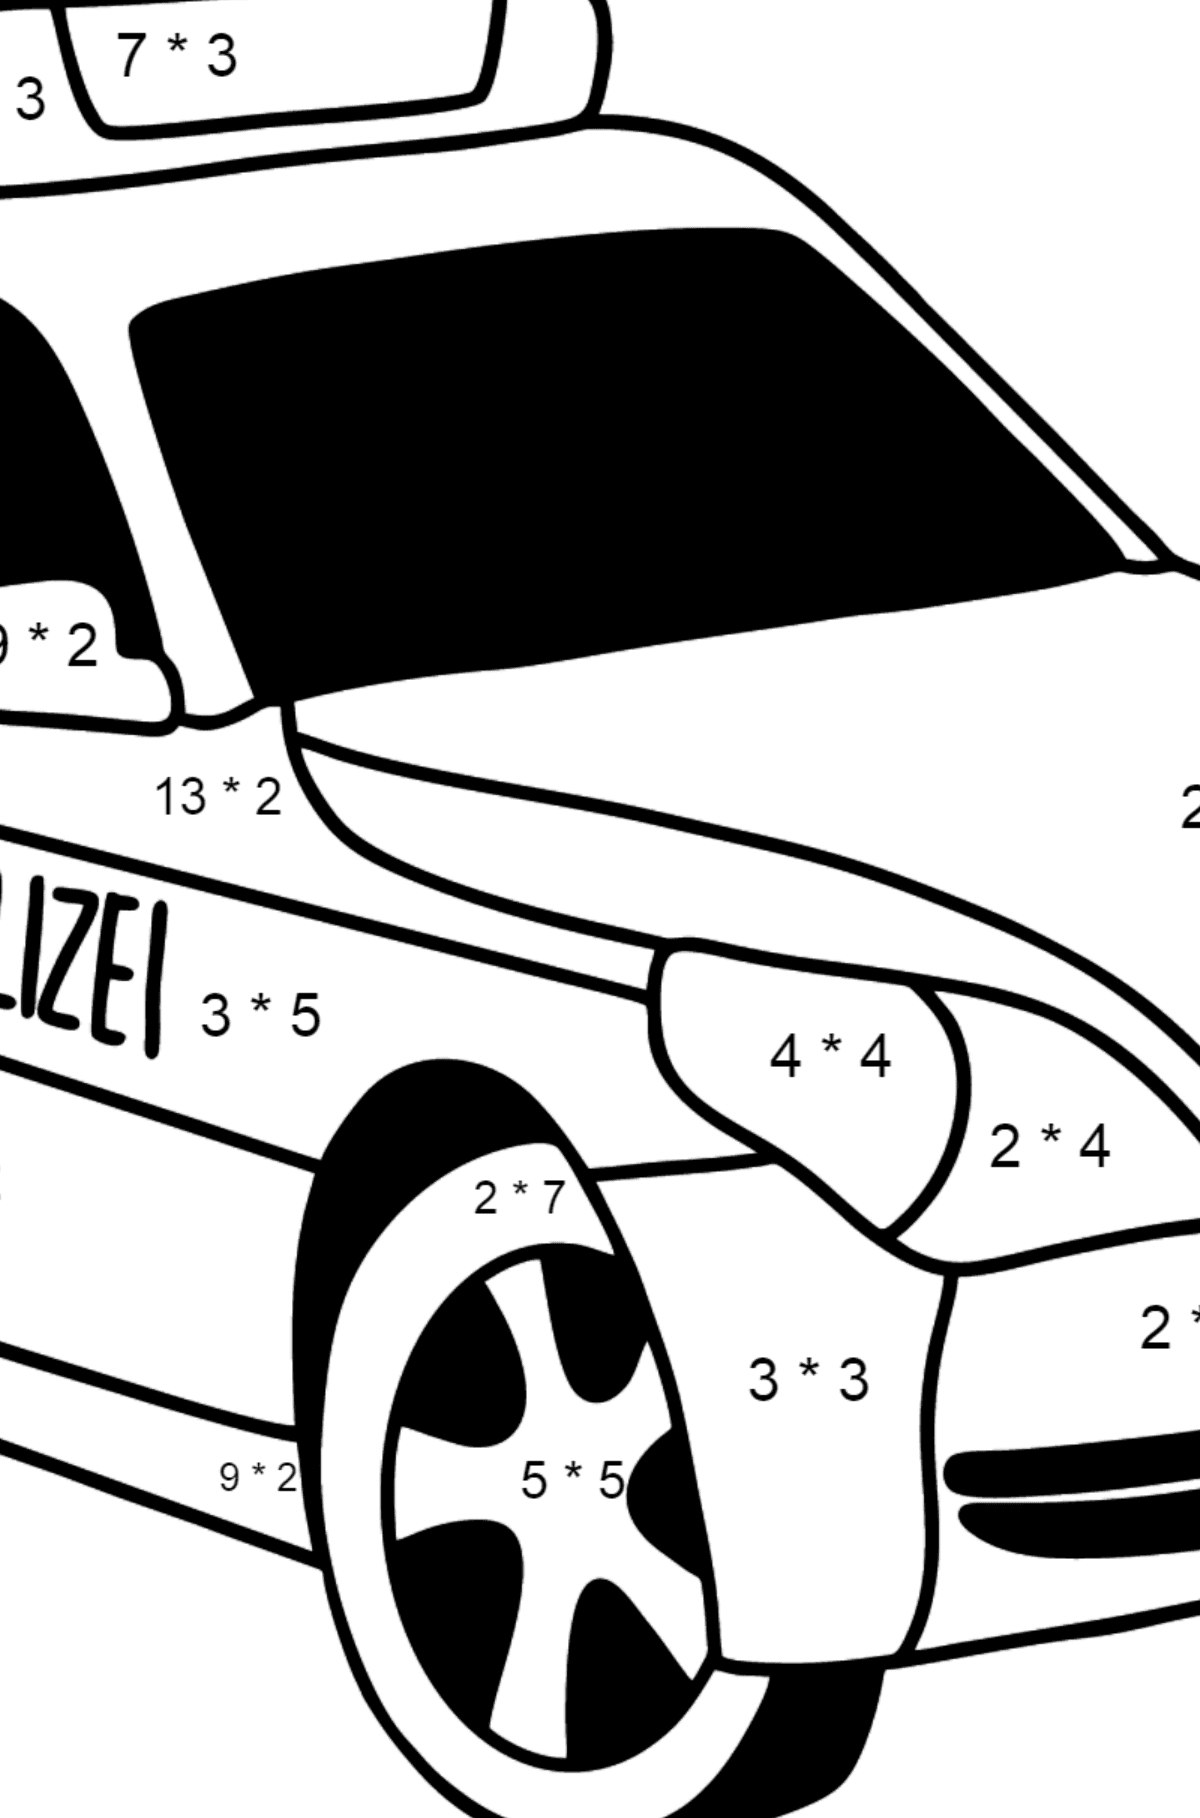 Police Car in Germany coloring page - Math Coloring - Multiplication for Kids